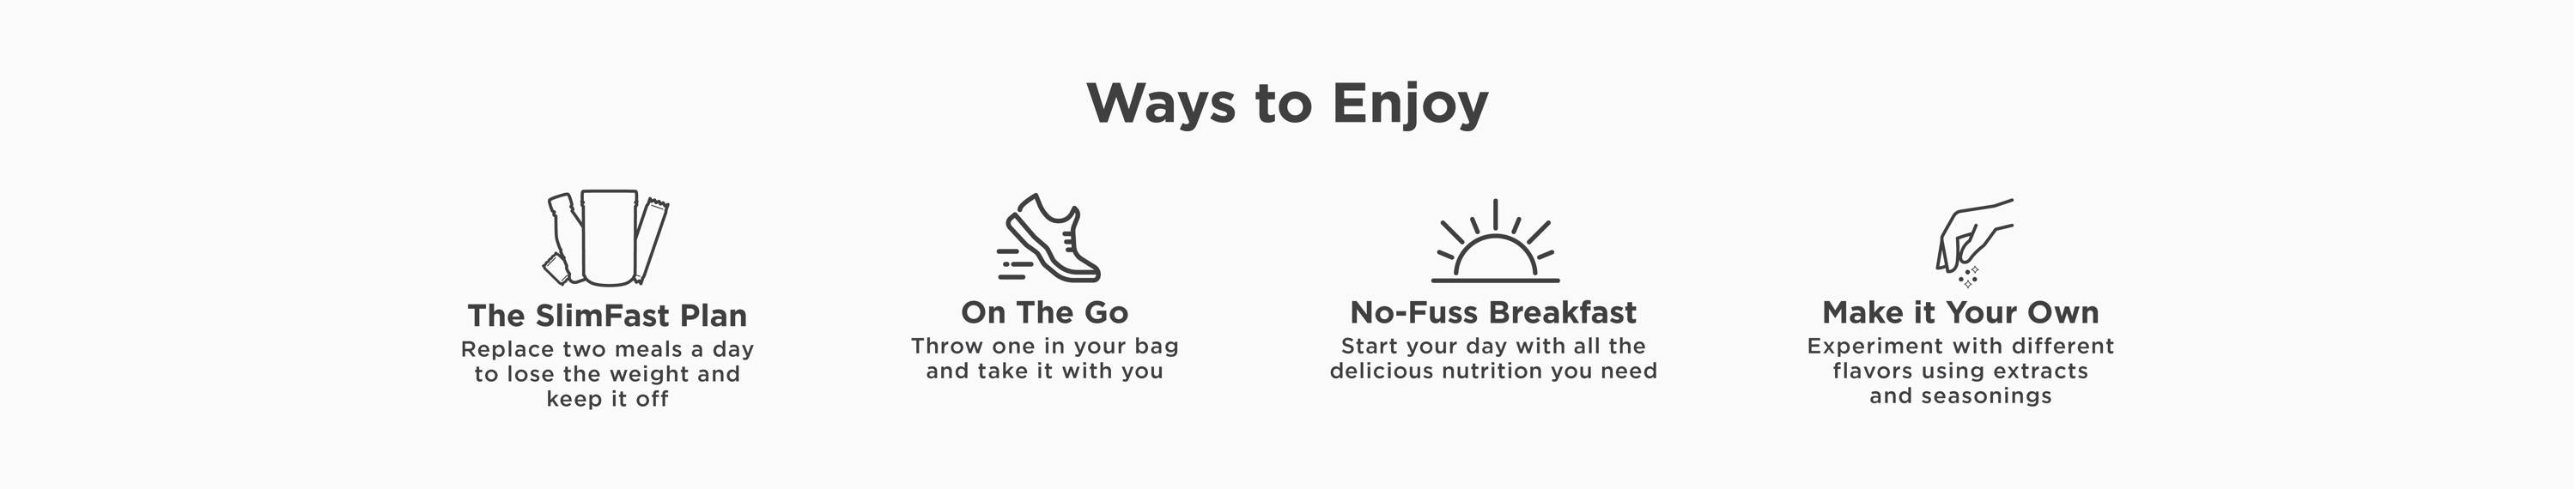 Ways to enjoy Advanced Energy Shakes: Use it on the SlimFast plan, take them on the go, have a no-fuss breakfast, or make it your own!